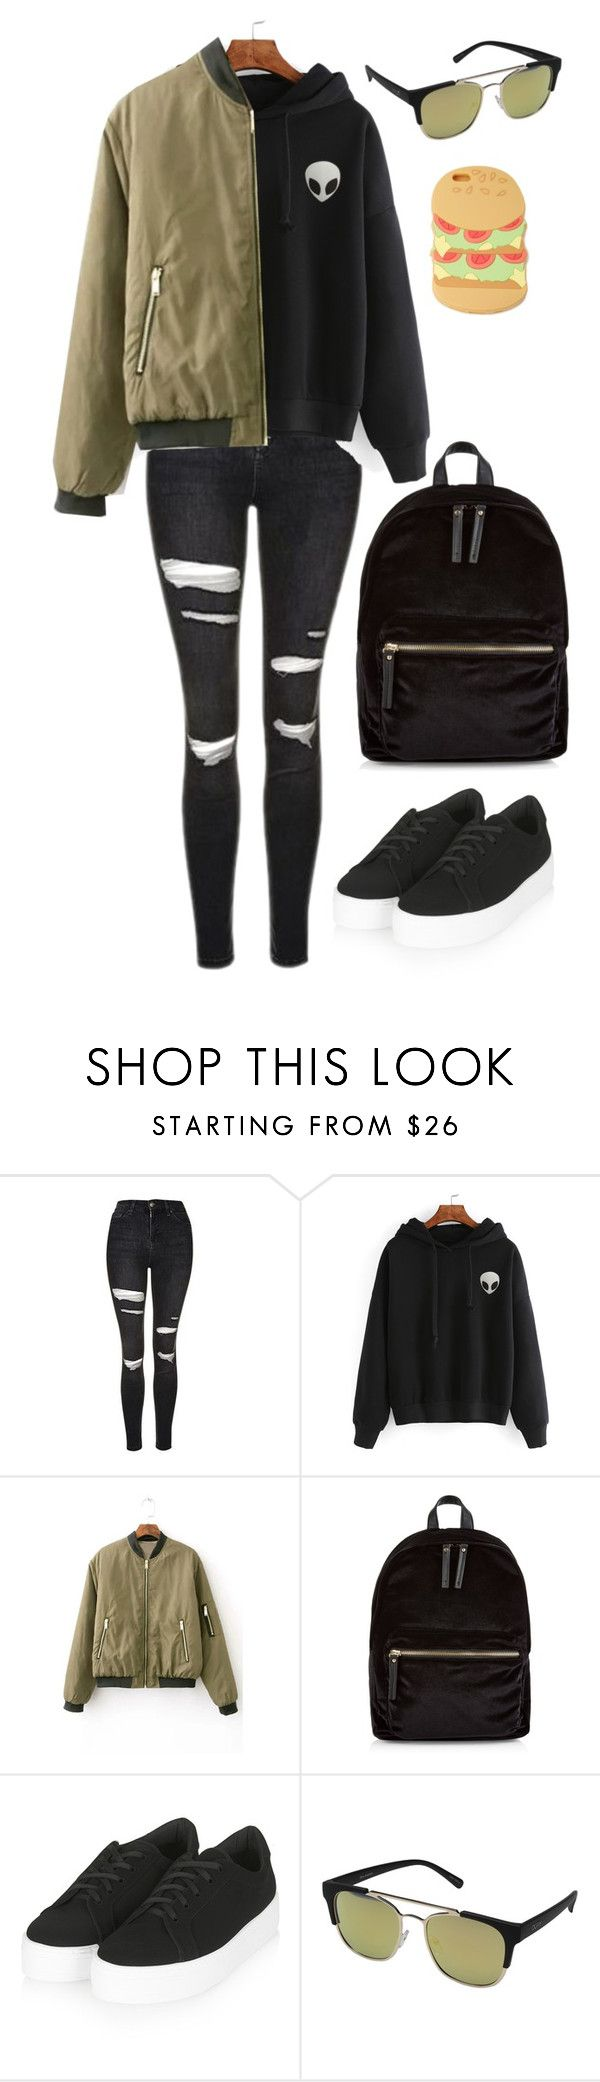 """""""My Style"""" by sphinx-moth ❤ liked on Polyvore featuring Topshop, New Look, Quay, Forever 21, StreetStyle, Fall, urban, layers and falltrend"""